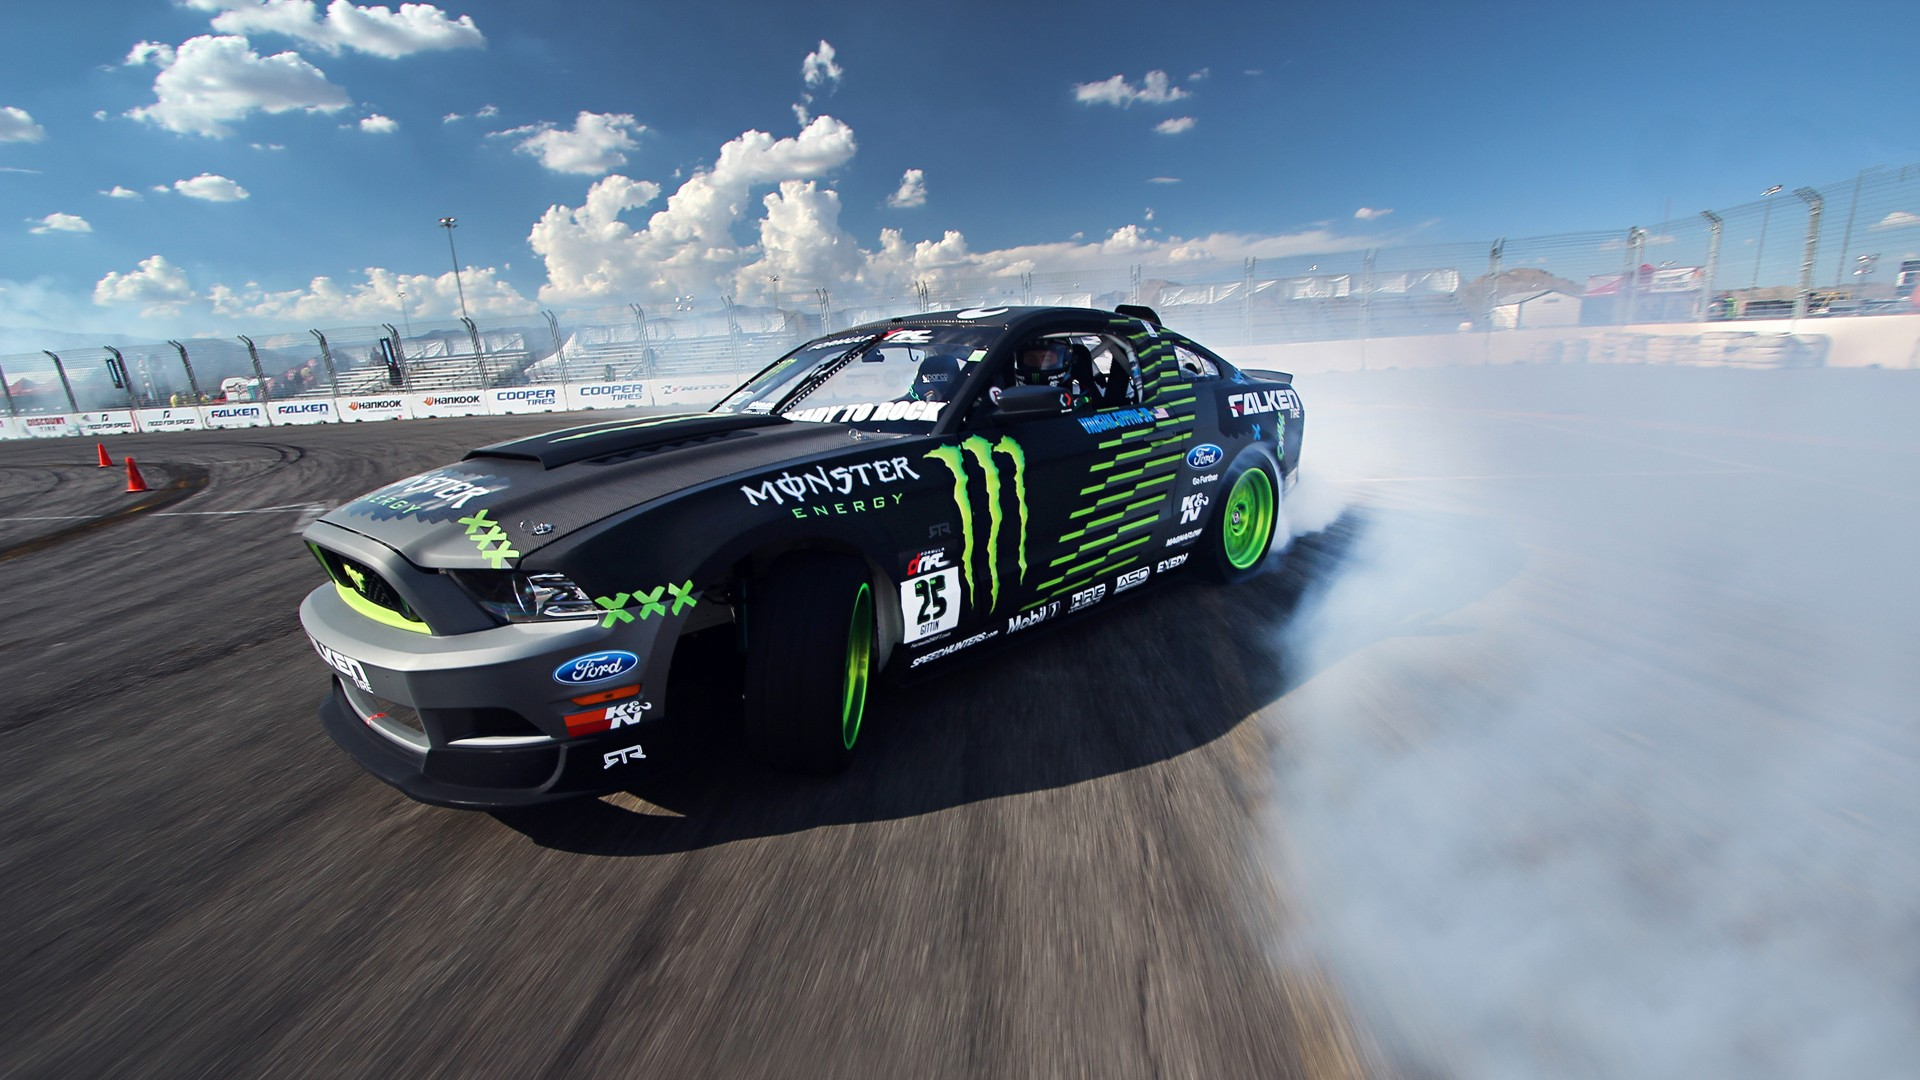 ford mustang monster car drift, hd cars, 4k wallpapers, images